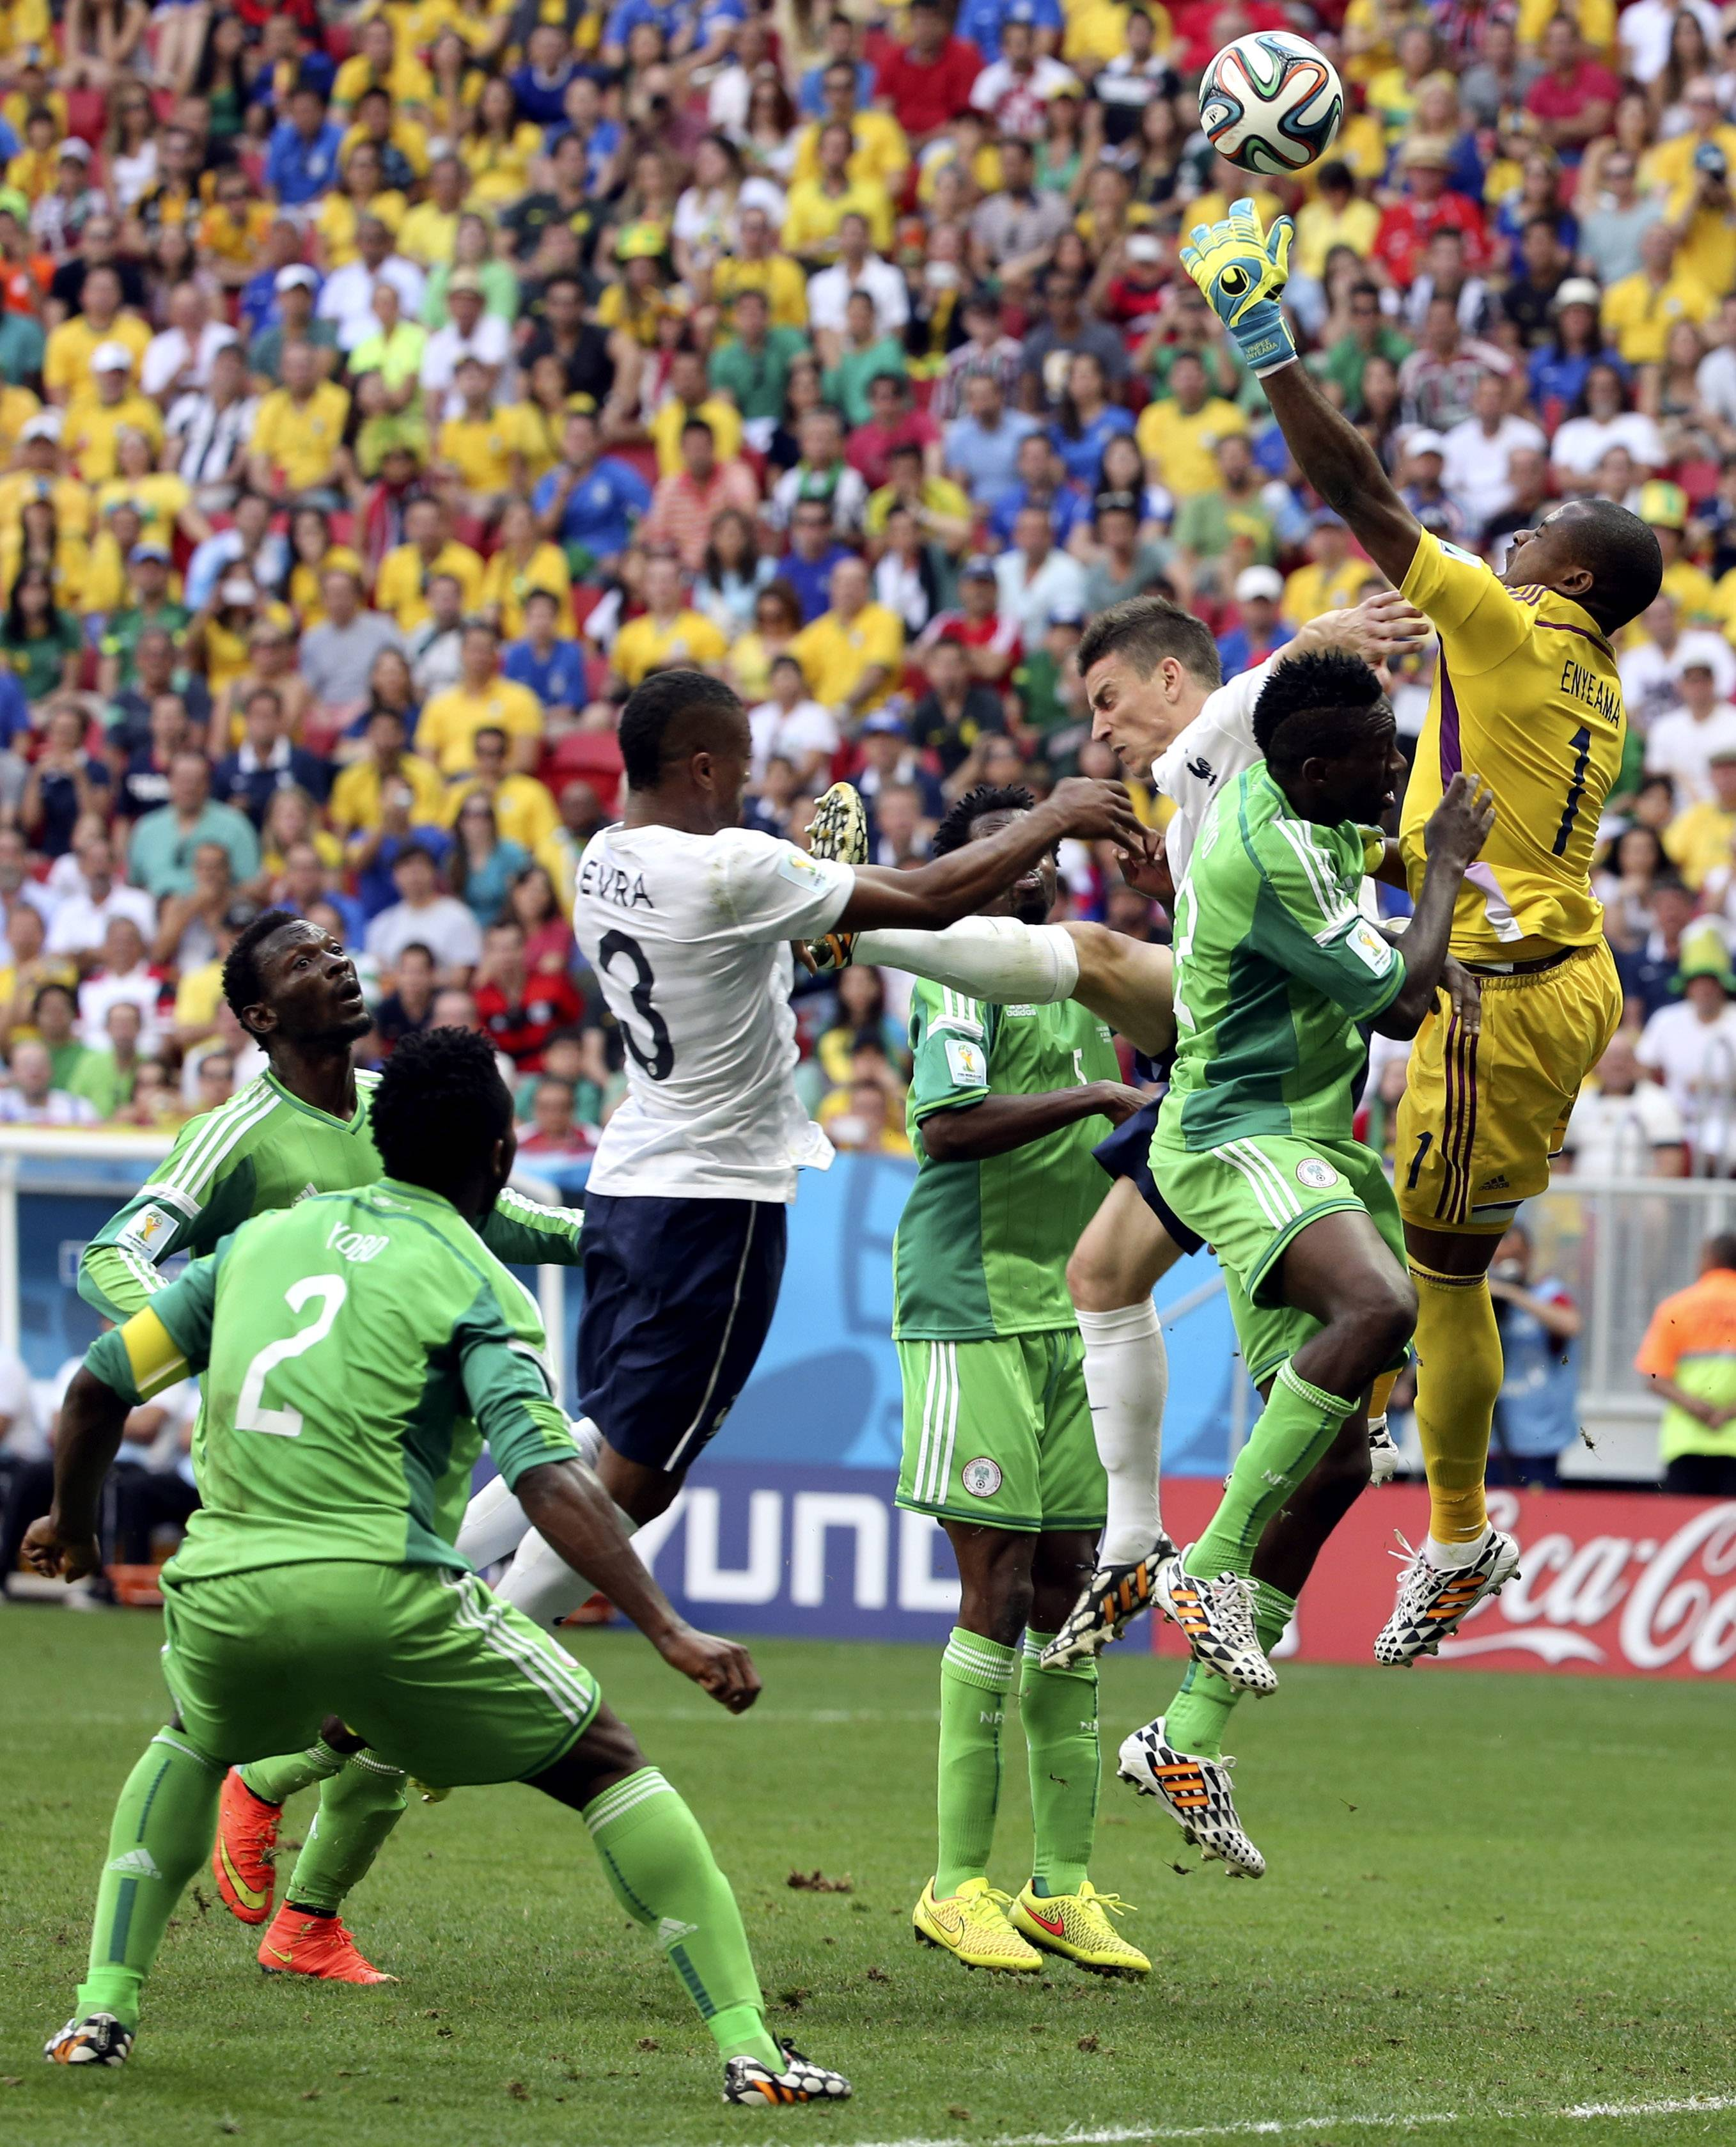 Nigeria's goalkeeper Vincent Enyeama fails to gather a cross from which France's Paul Pogba scored the opening goal during the World Cup round of 16 soccer match between France and Nigeria at the Estadio Nacional in Brasilia, Brazil, Monday, June 30, 2014.